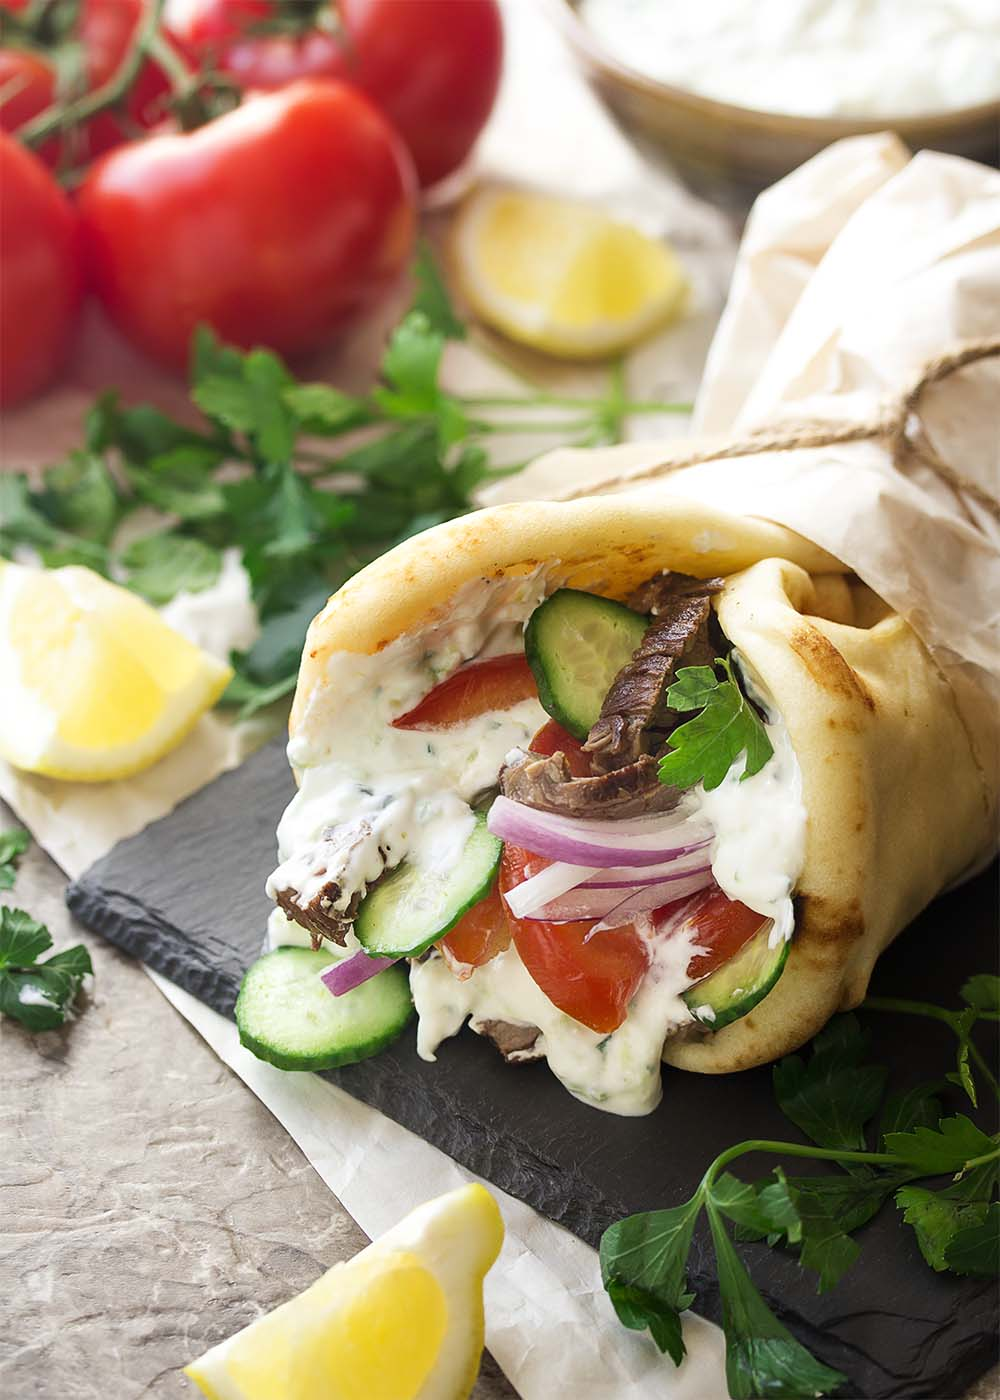 A steak gyro wrap filled with sliced steak, tzatziki sauce, tomatoes, and onions.